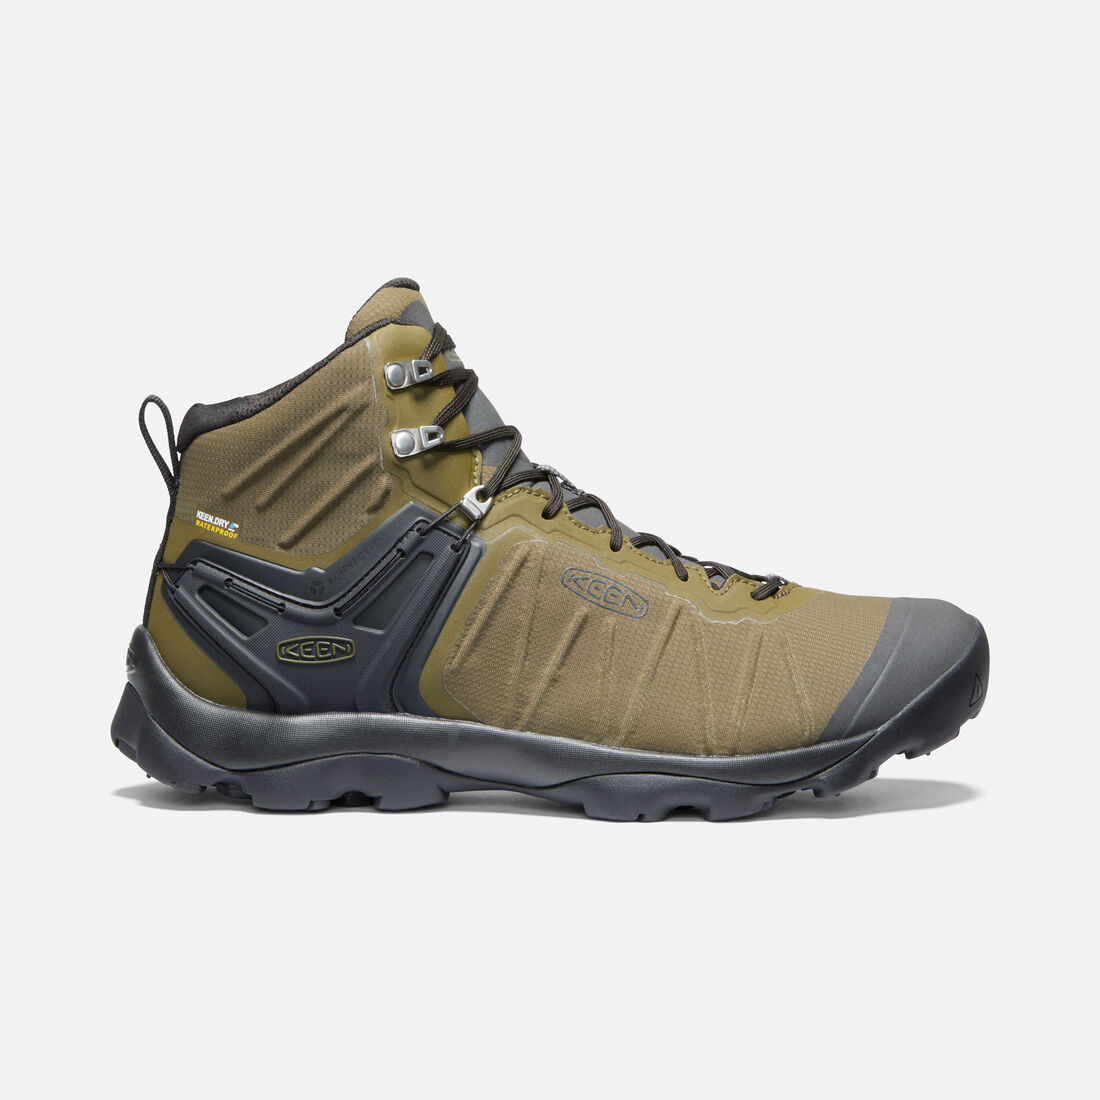 new style a3786 cfe4f Men's Venture Mid - Waterproof Hiking Boots | KEEN Footwear